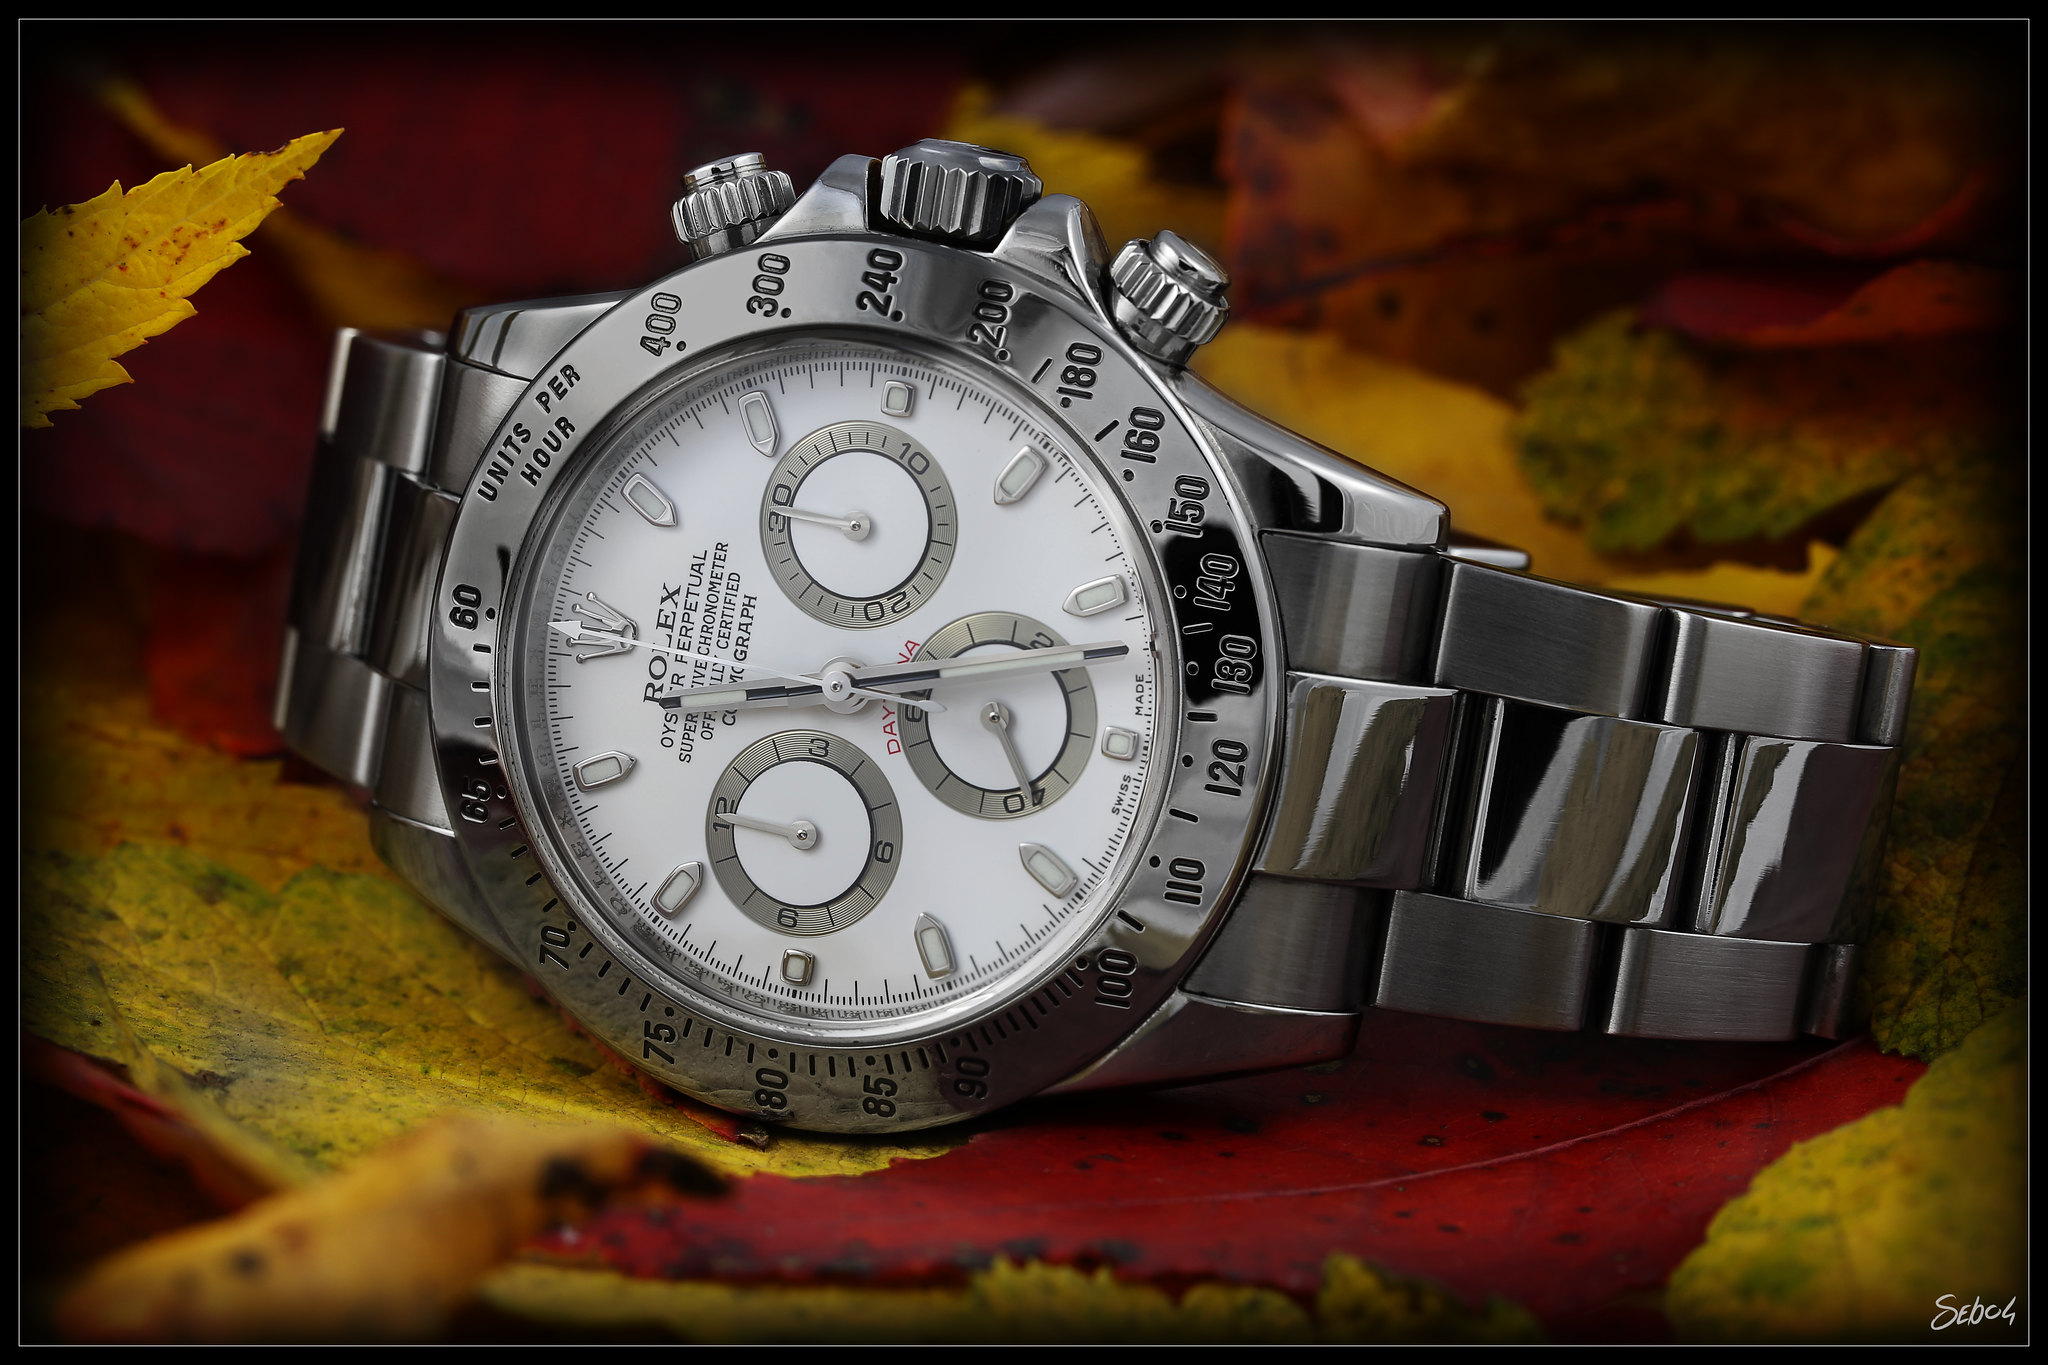 A Rolex Daytona watch with an Autumn color background.